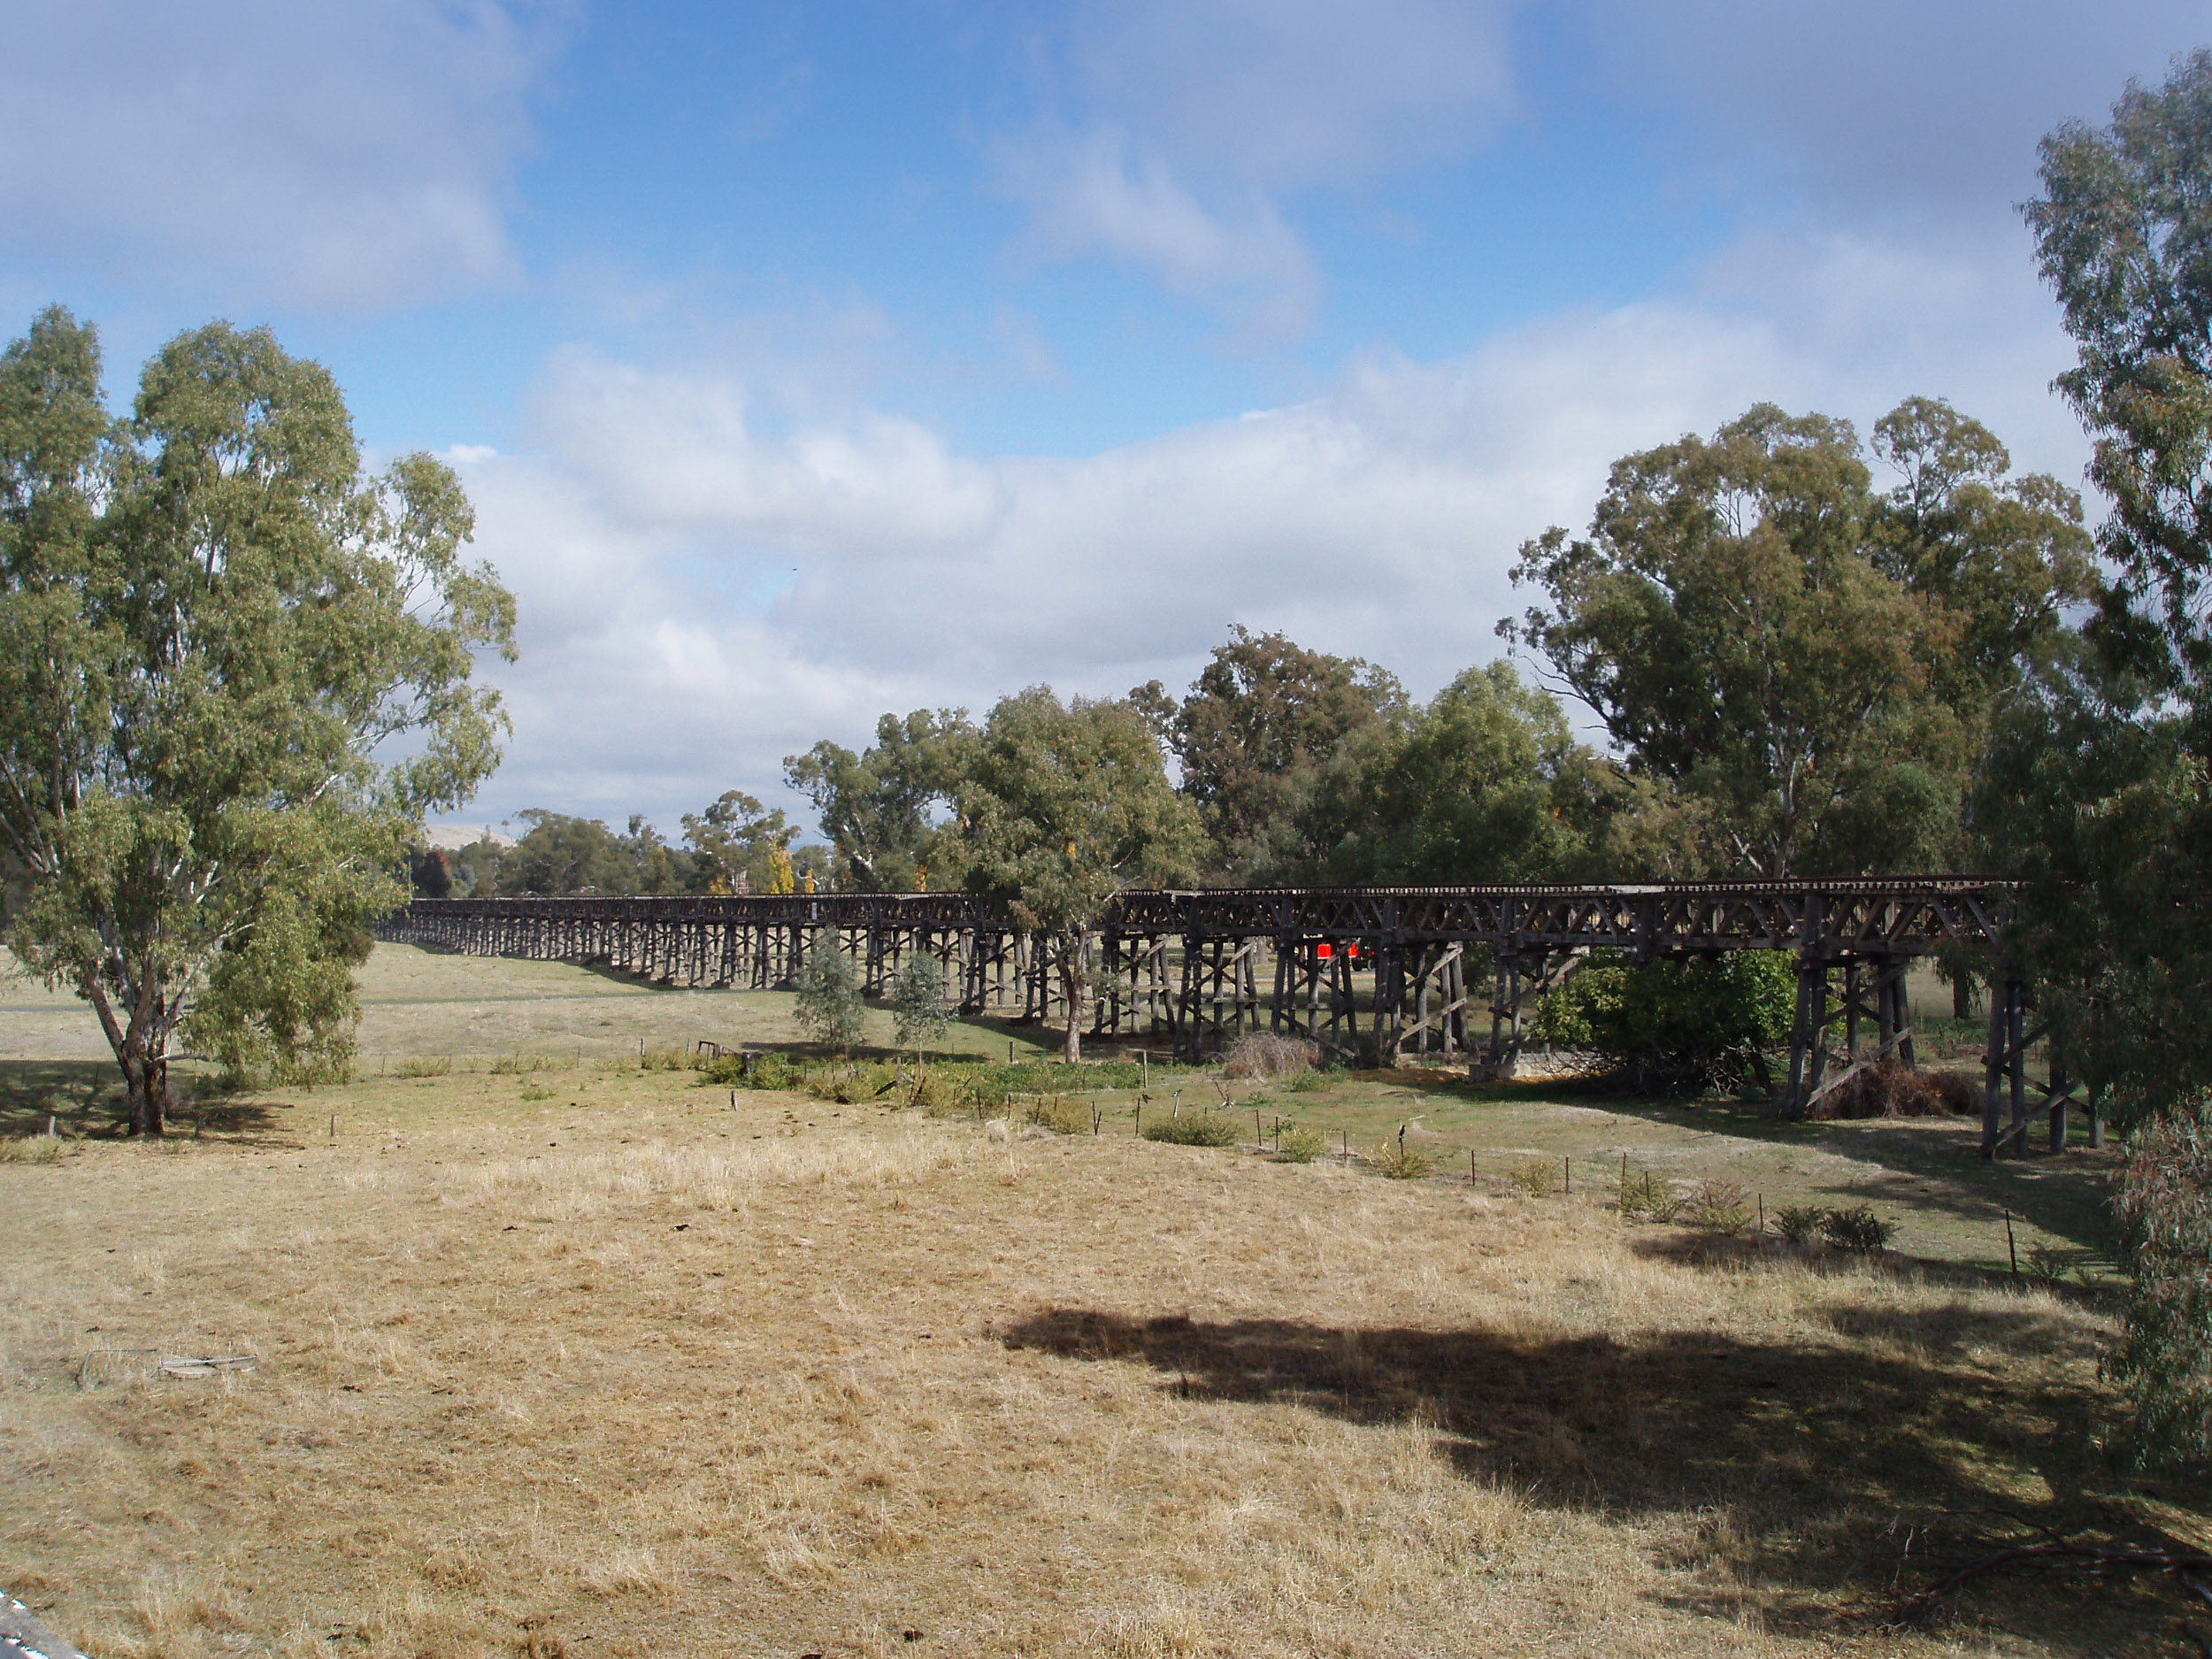 Photo of old railway viaduct, gundagai | Free australian stock images